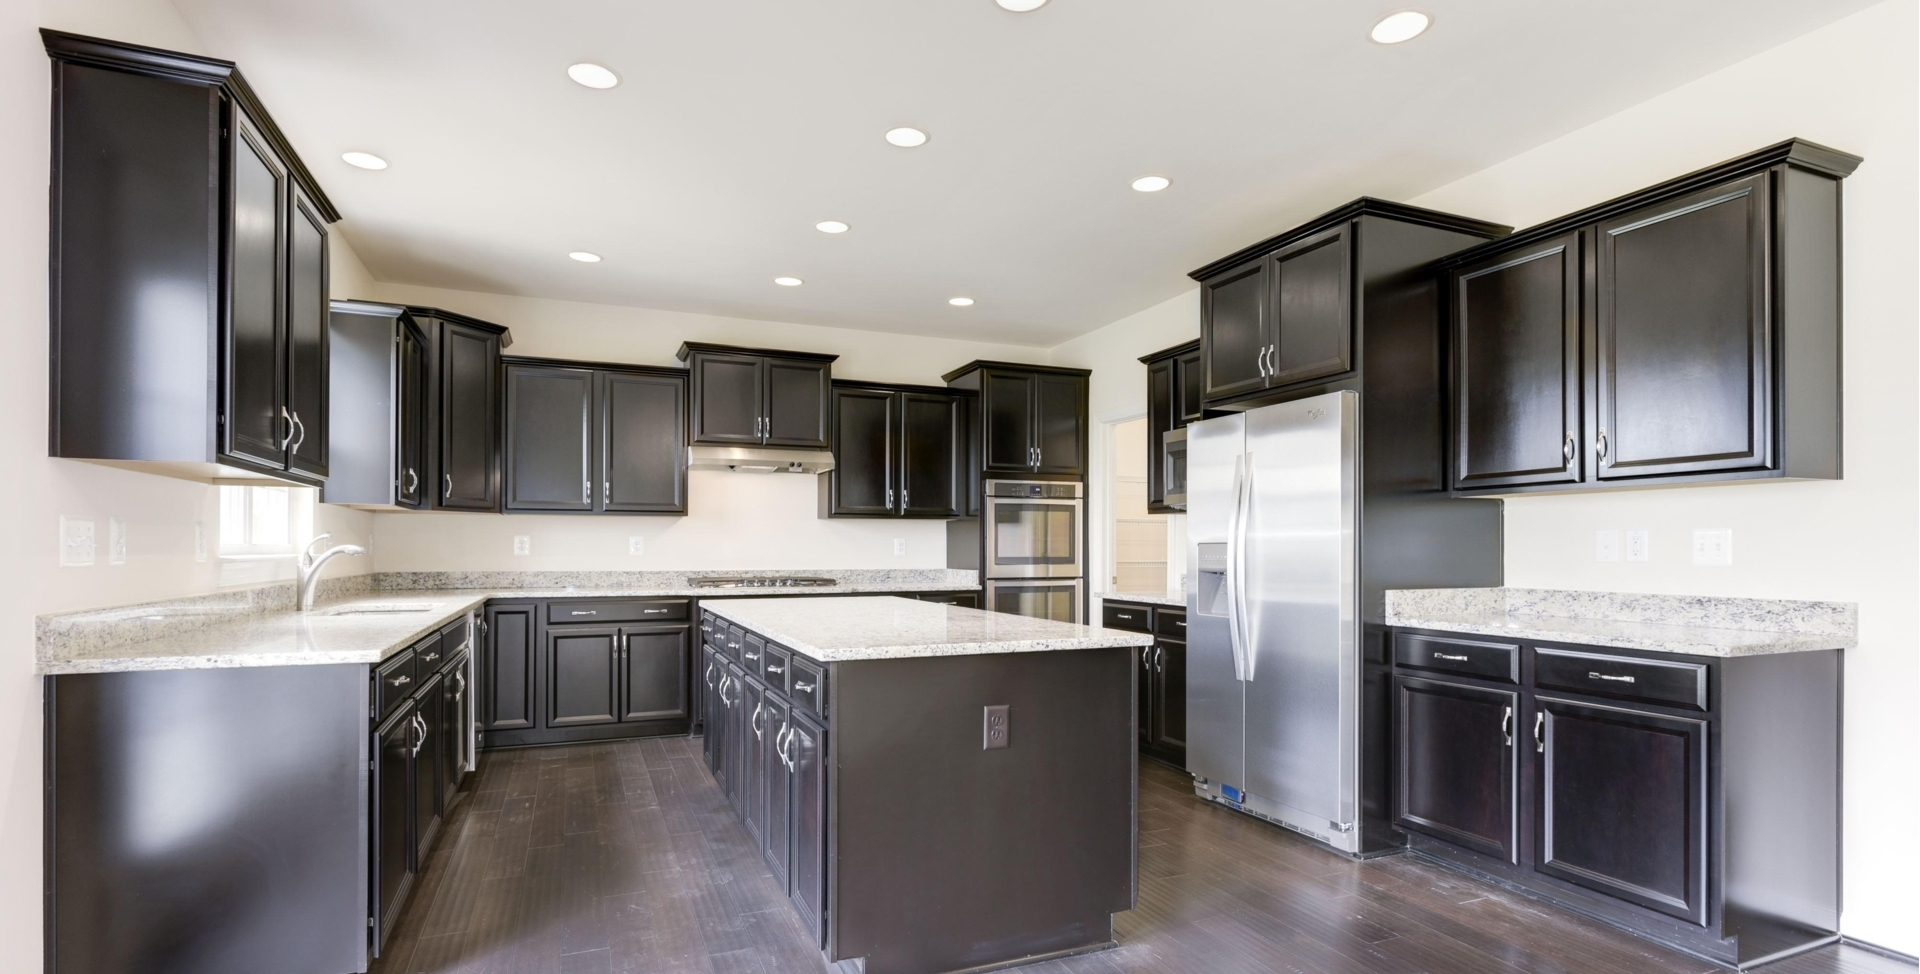 New Homes For Sale 14491 Falconaire Placeleesburg Va